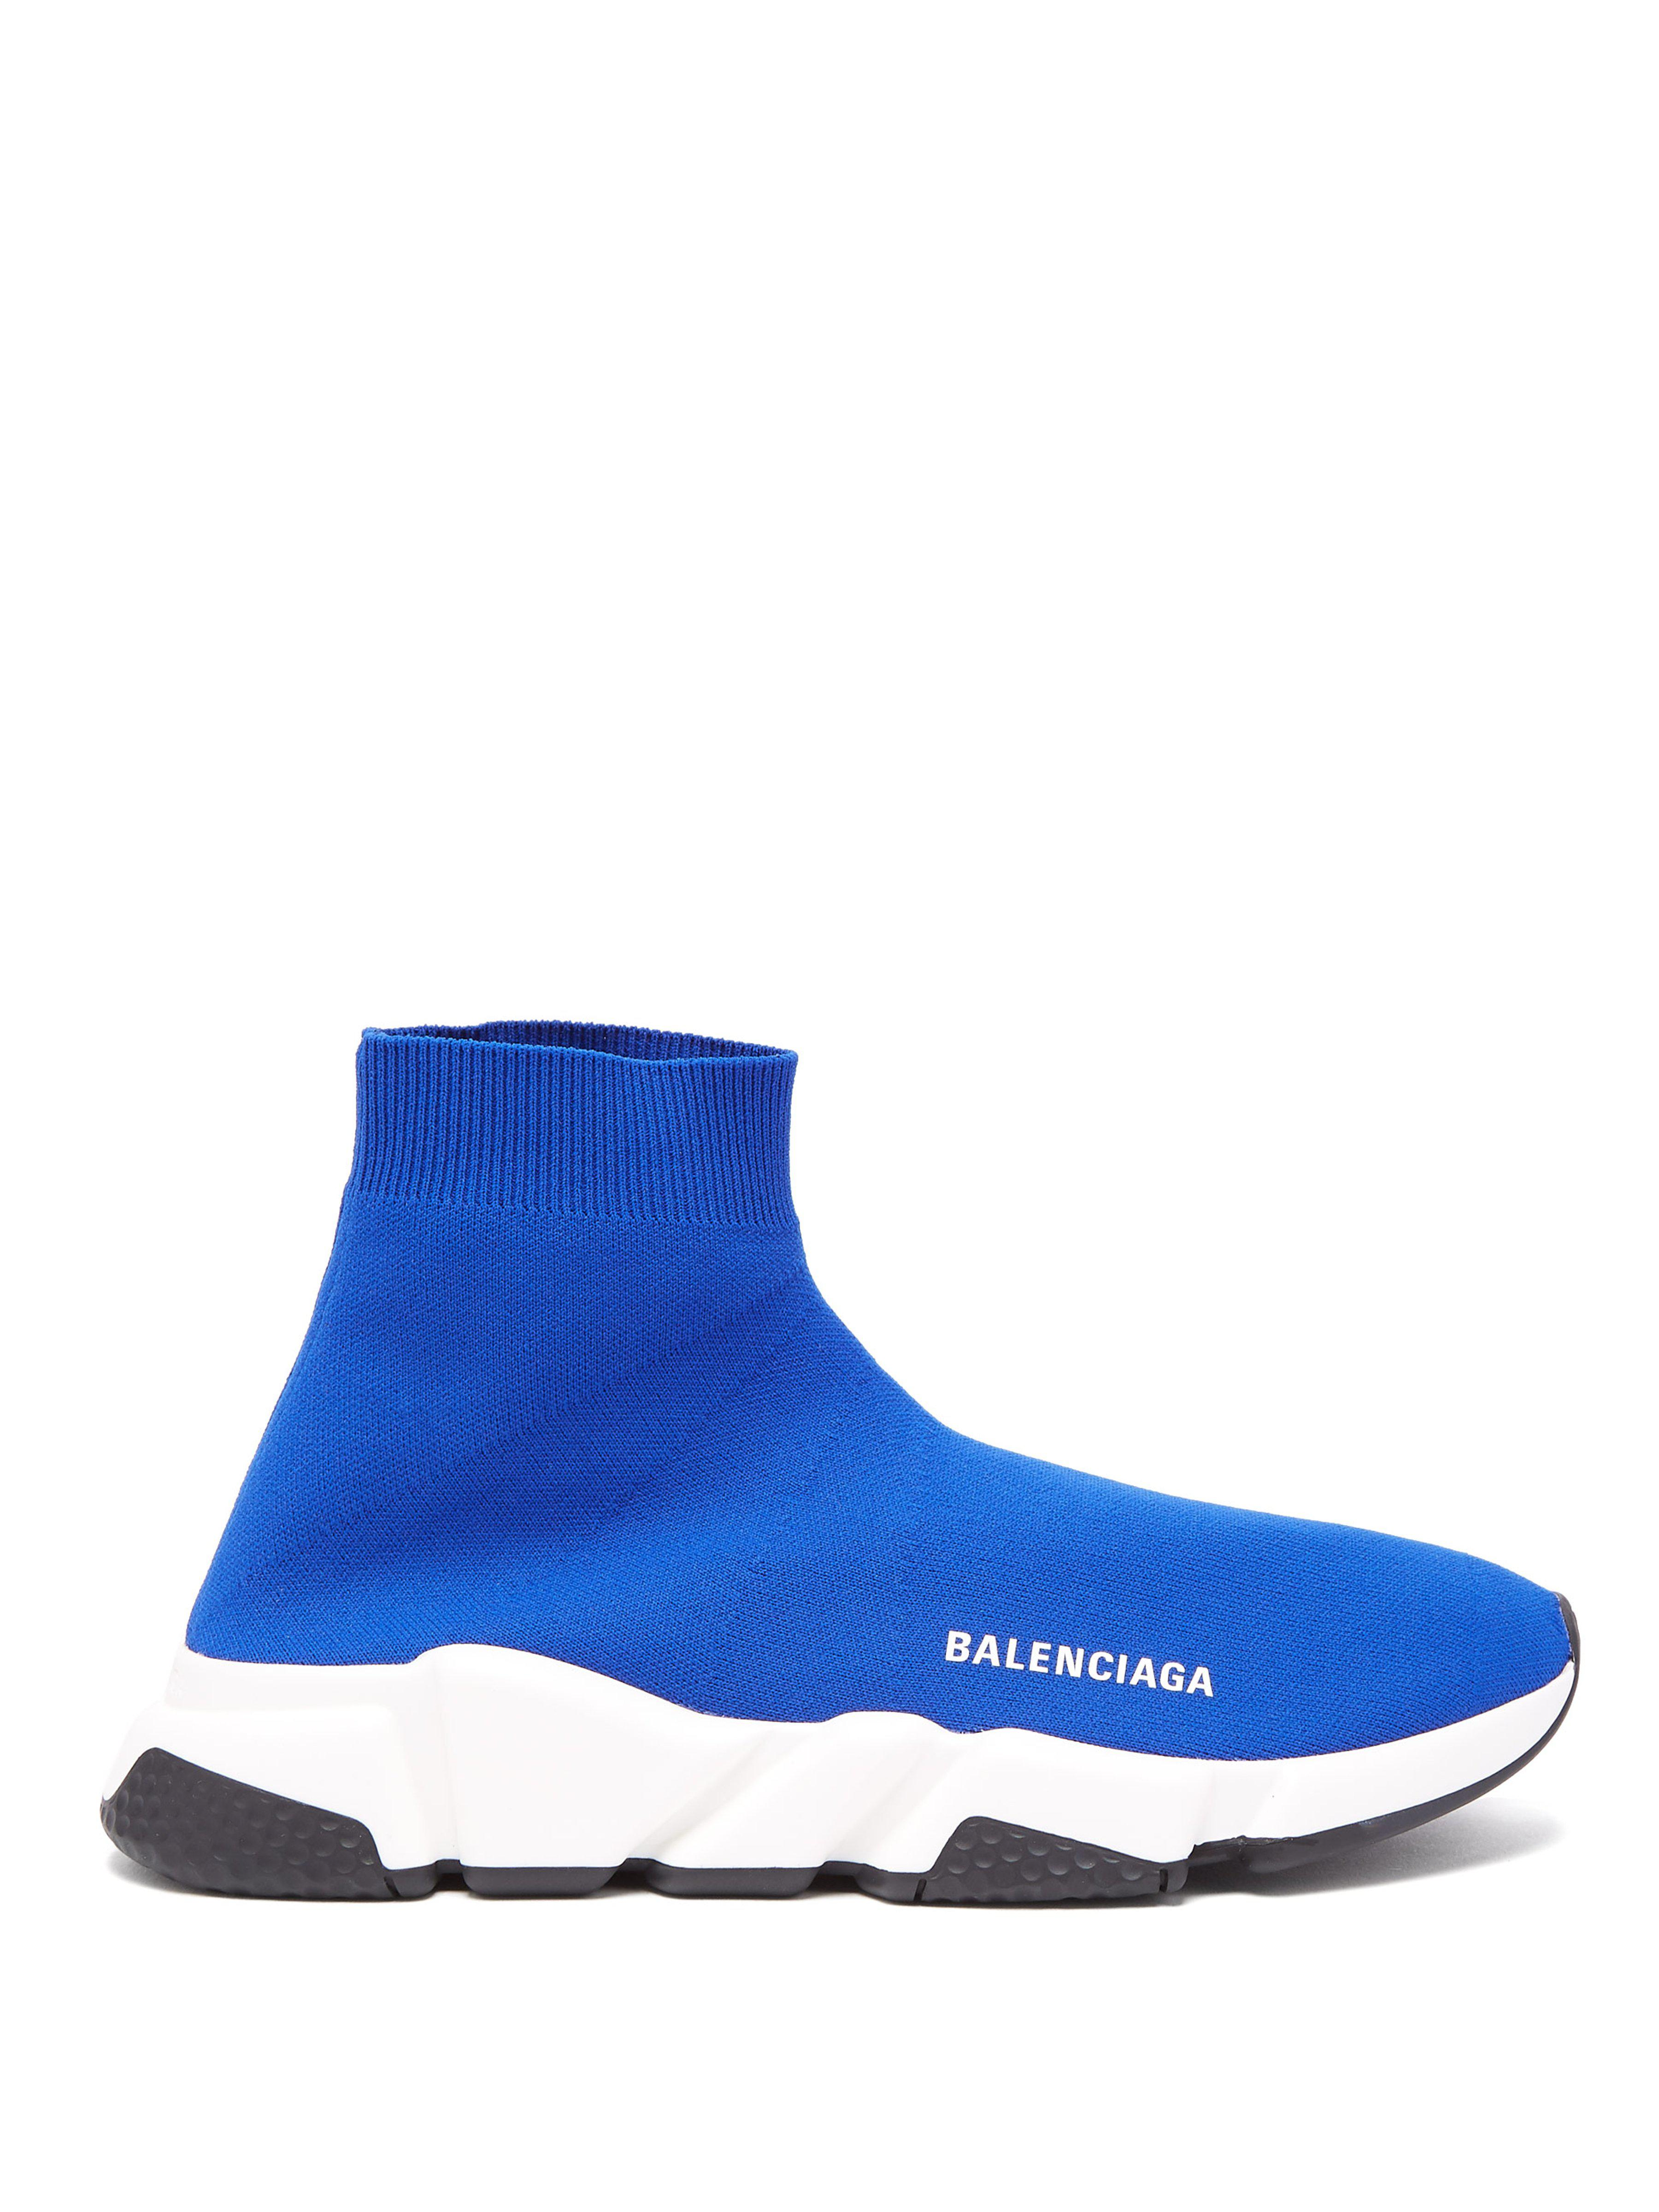 83d51b2a3a76 Balenciaga Blue And White Speed Sock Sneakers in Blue - Save 15% - Lyst